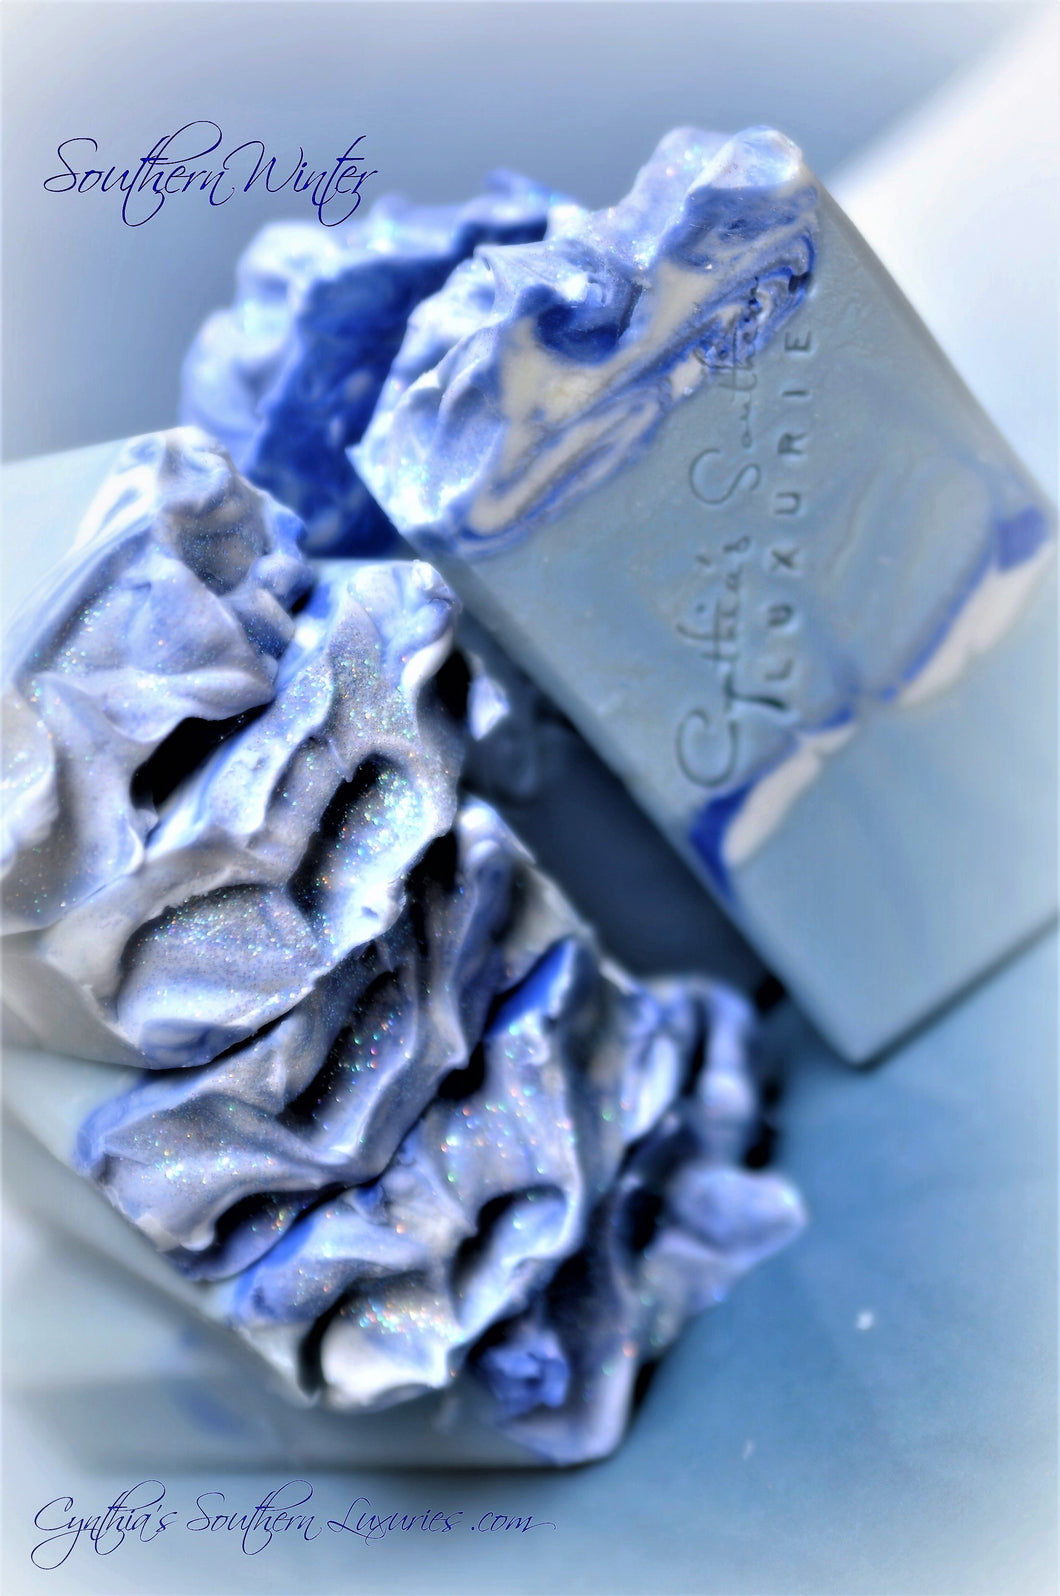 Southern Winter Spa Soap